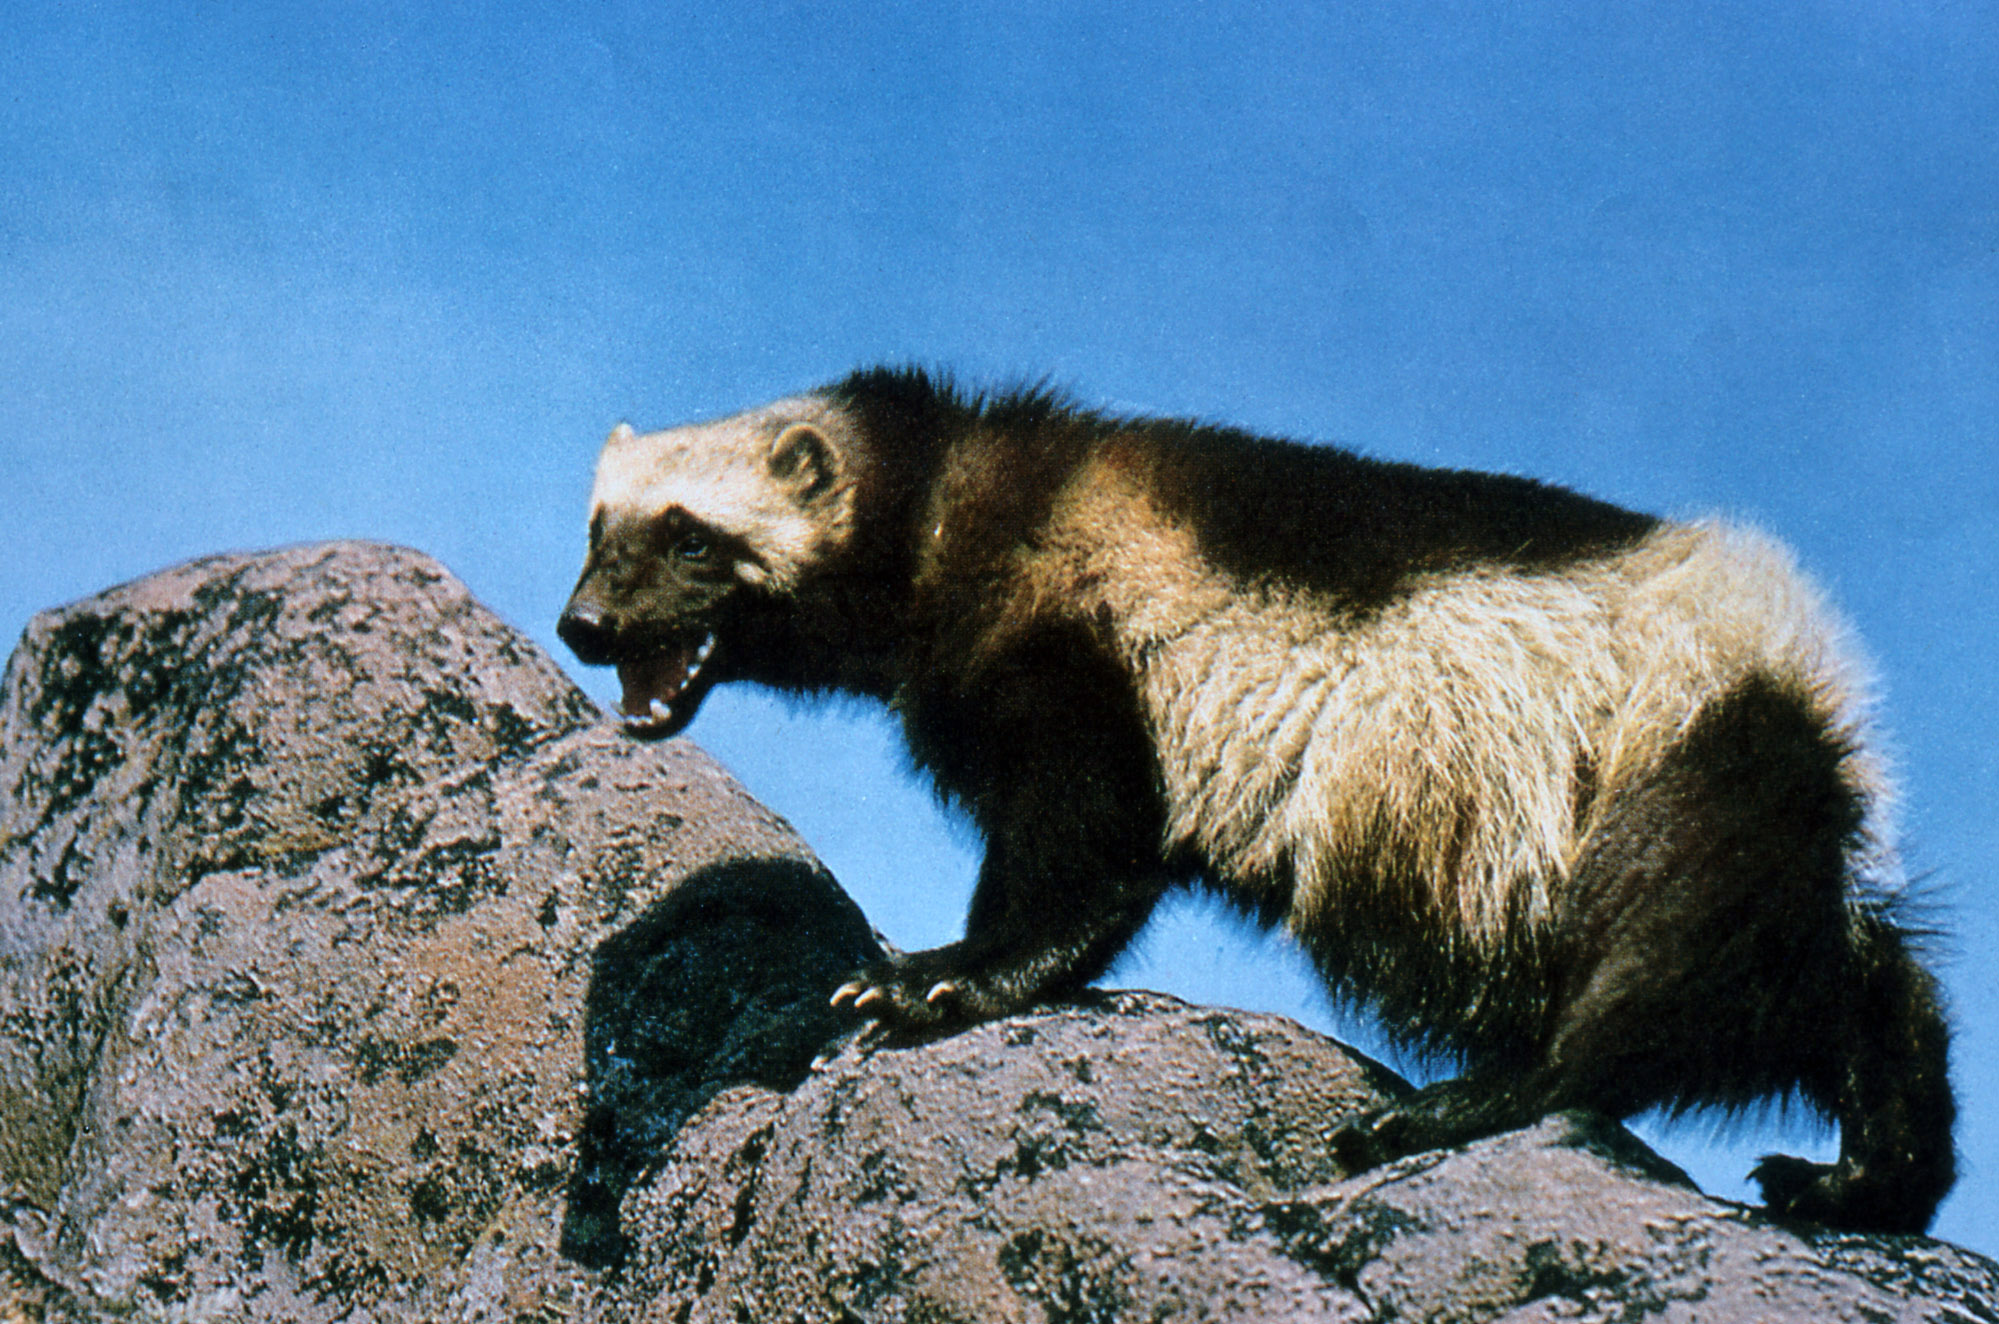 https://upload.wikimedia.org/wikipedia/commons/8/8c/Wolverine_on_rock.jpg